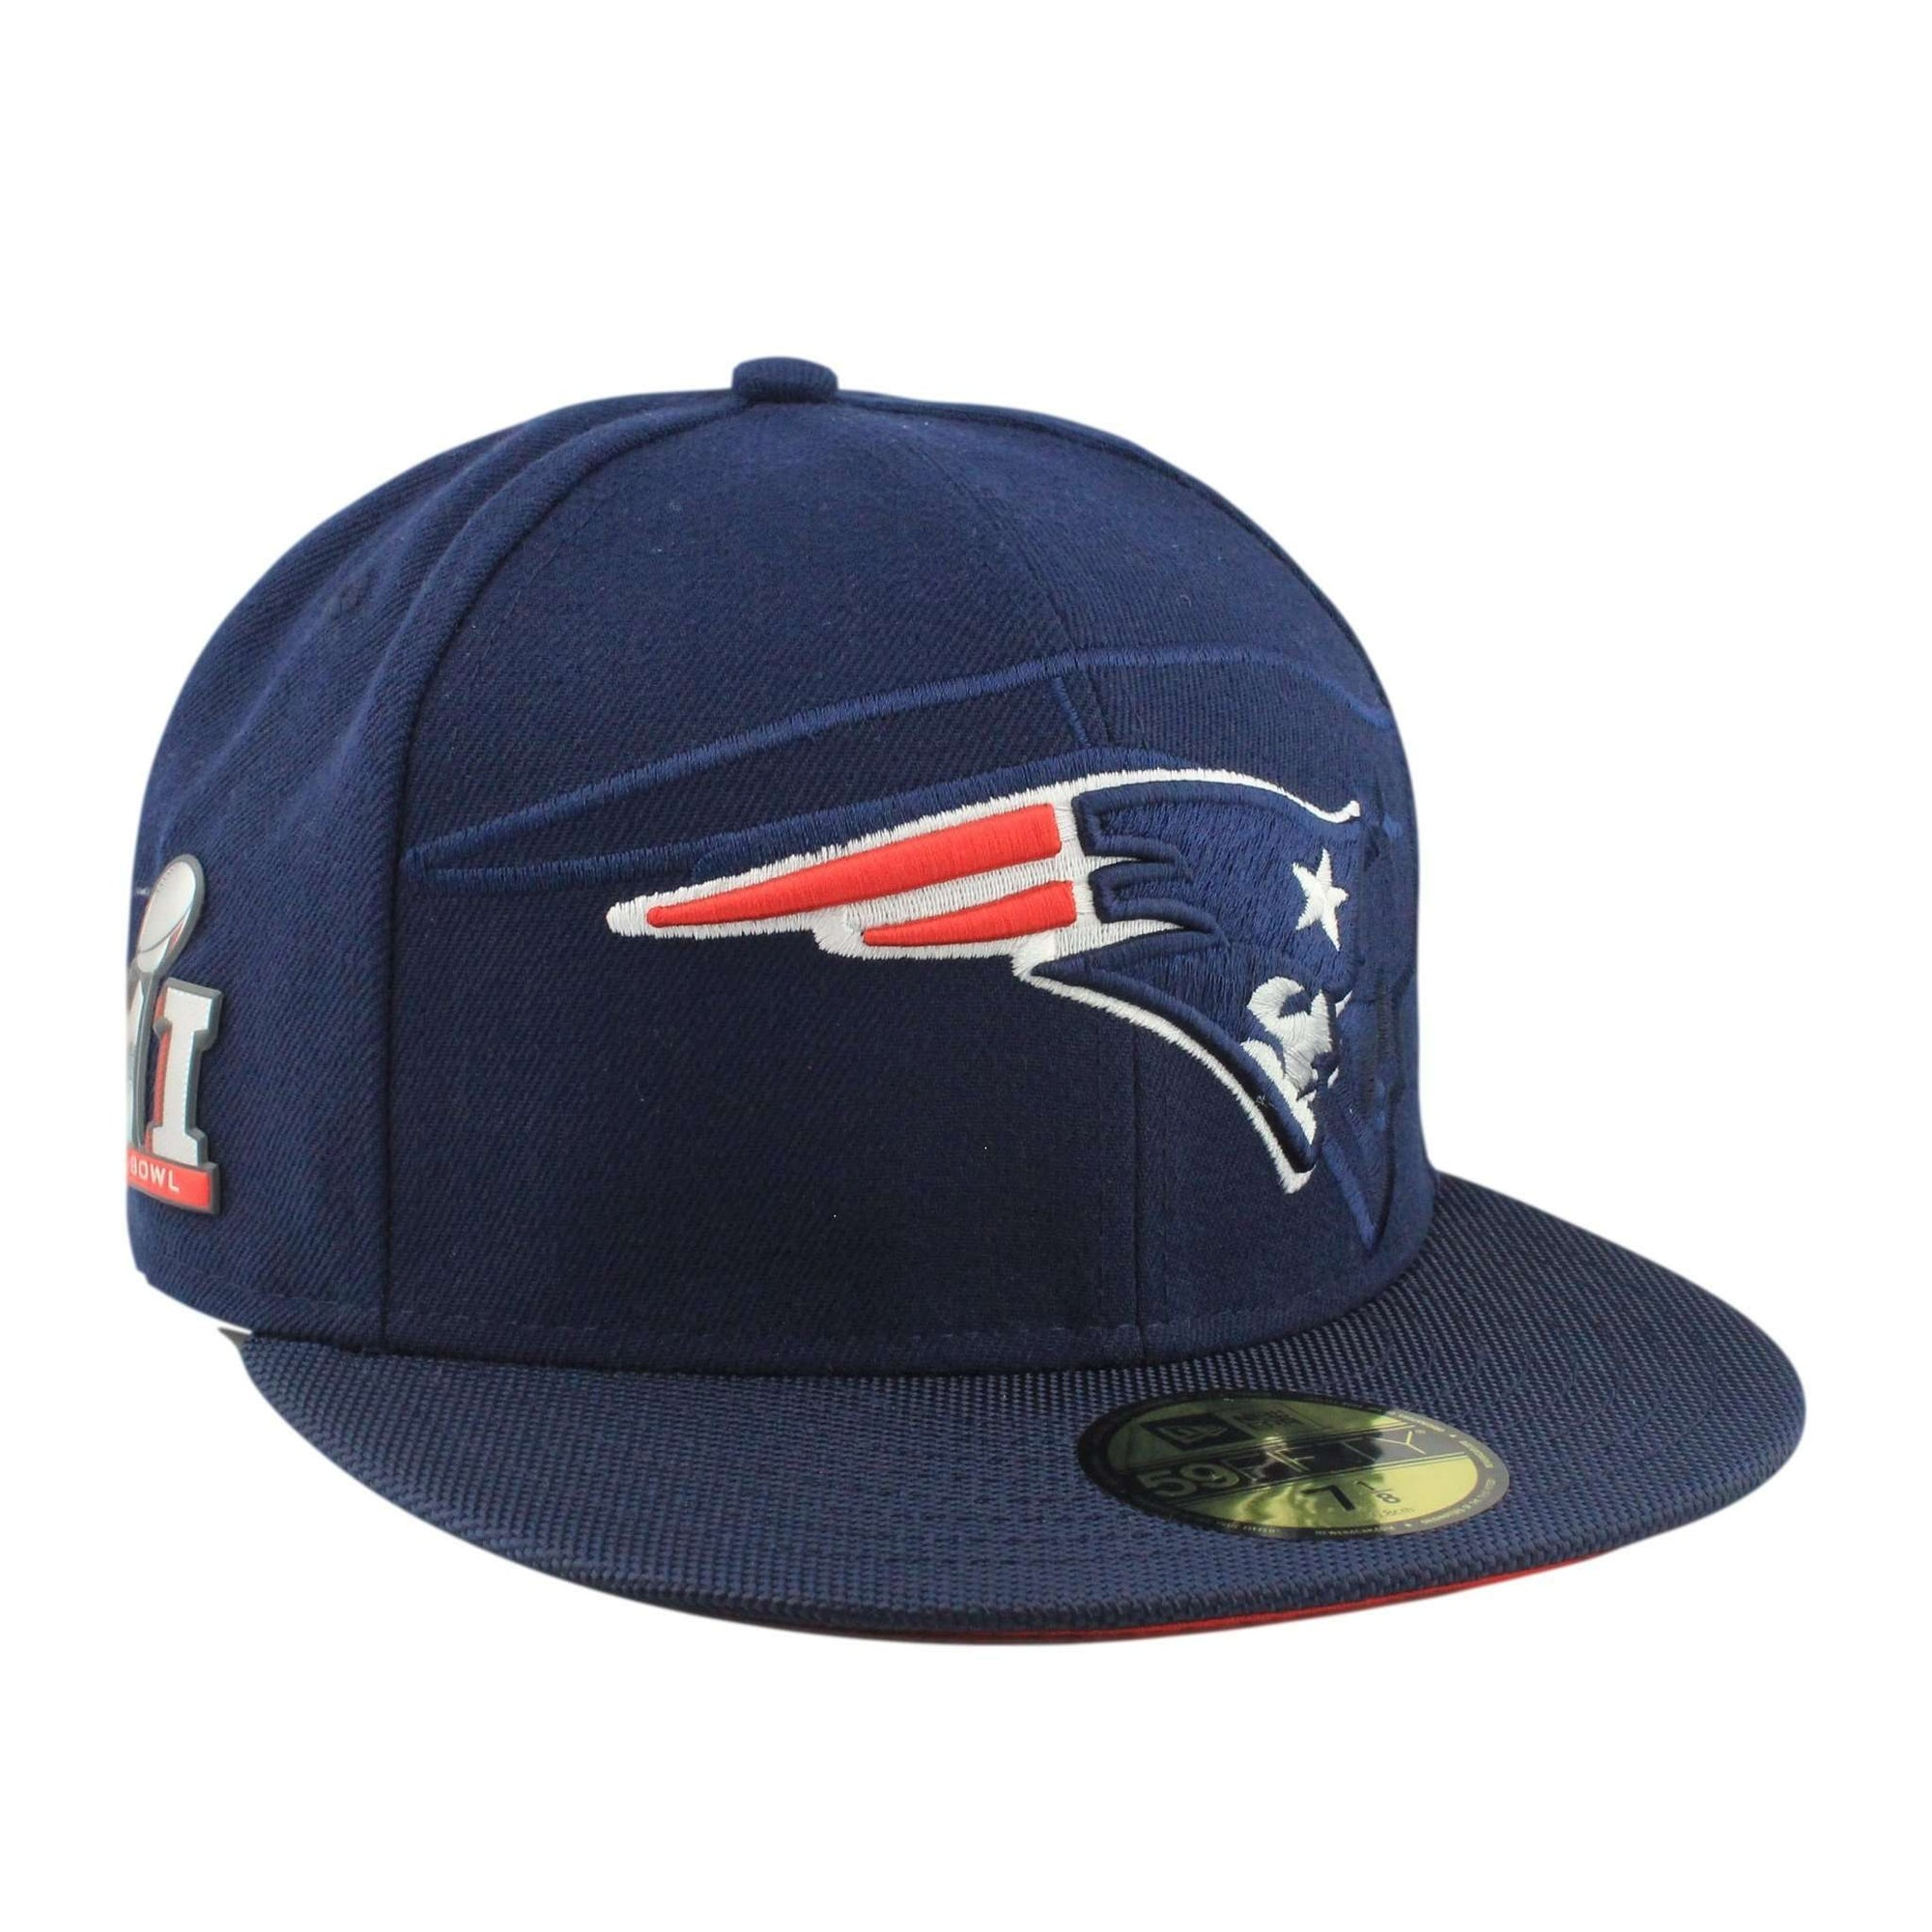 New England Patriots Fitted Throwback Hat